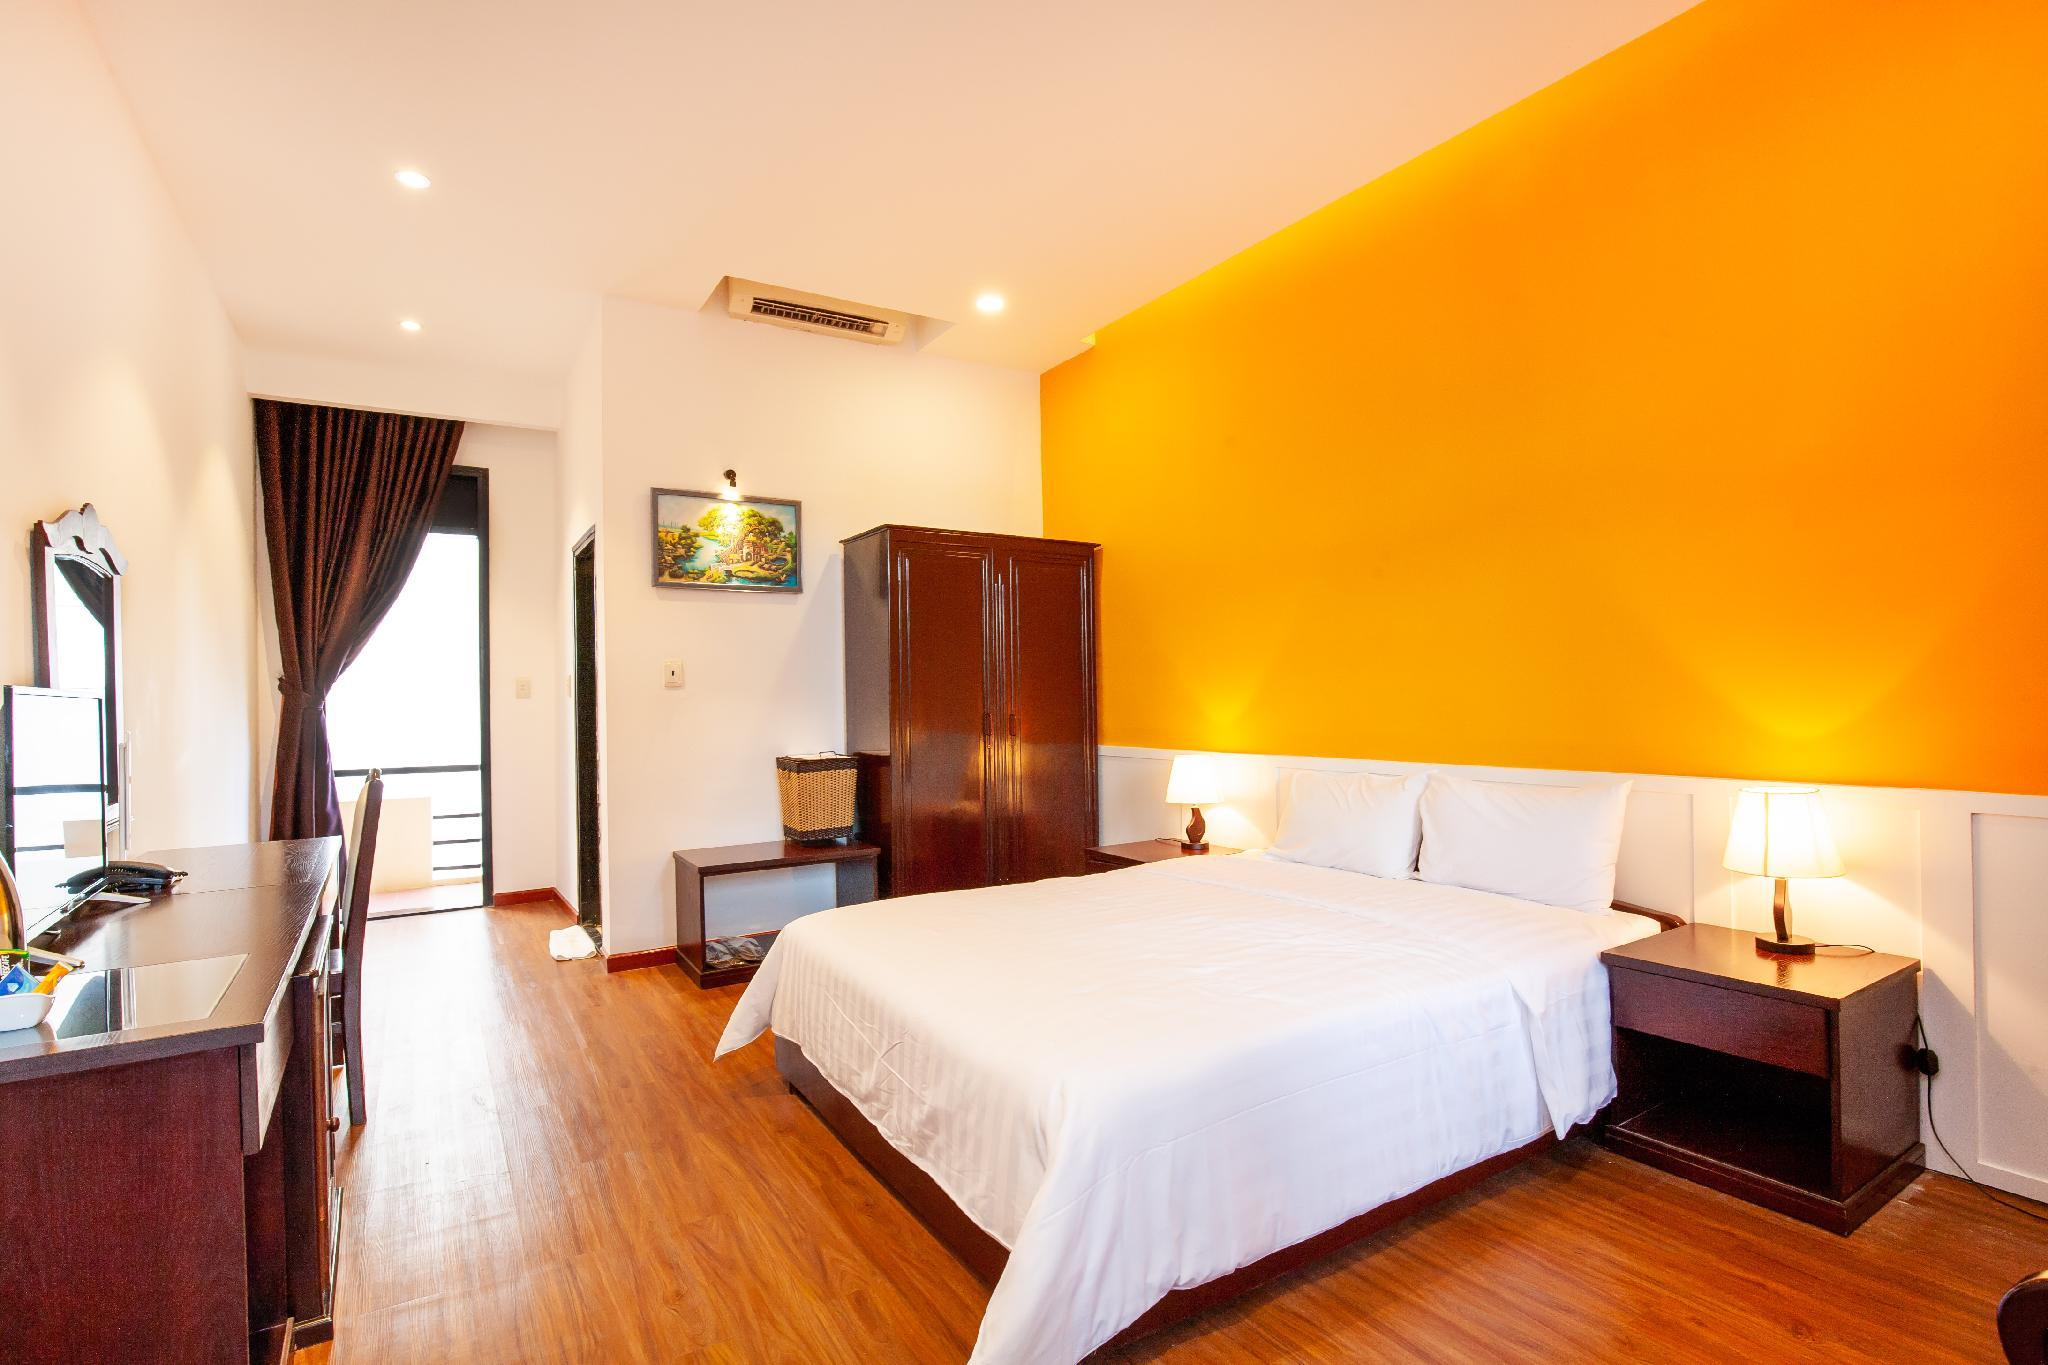 Special Place To Stay In The Heart Of Saigon